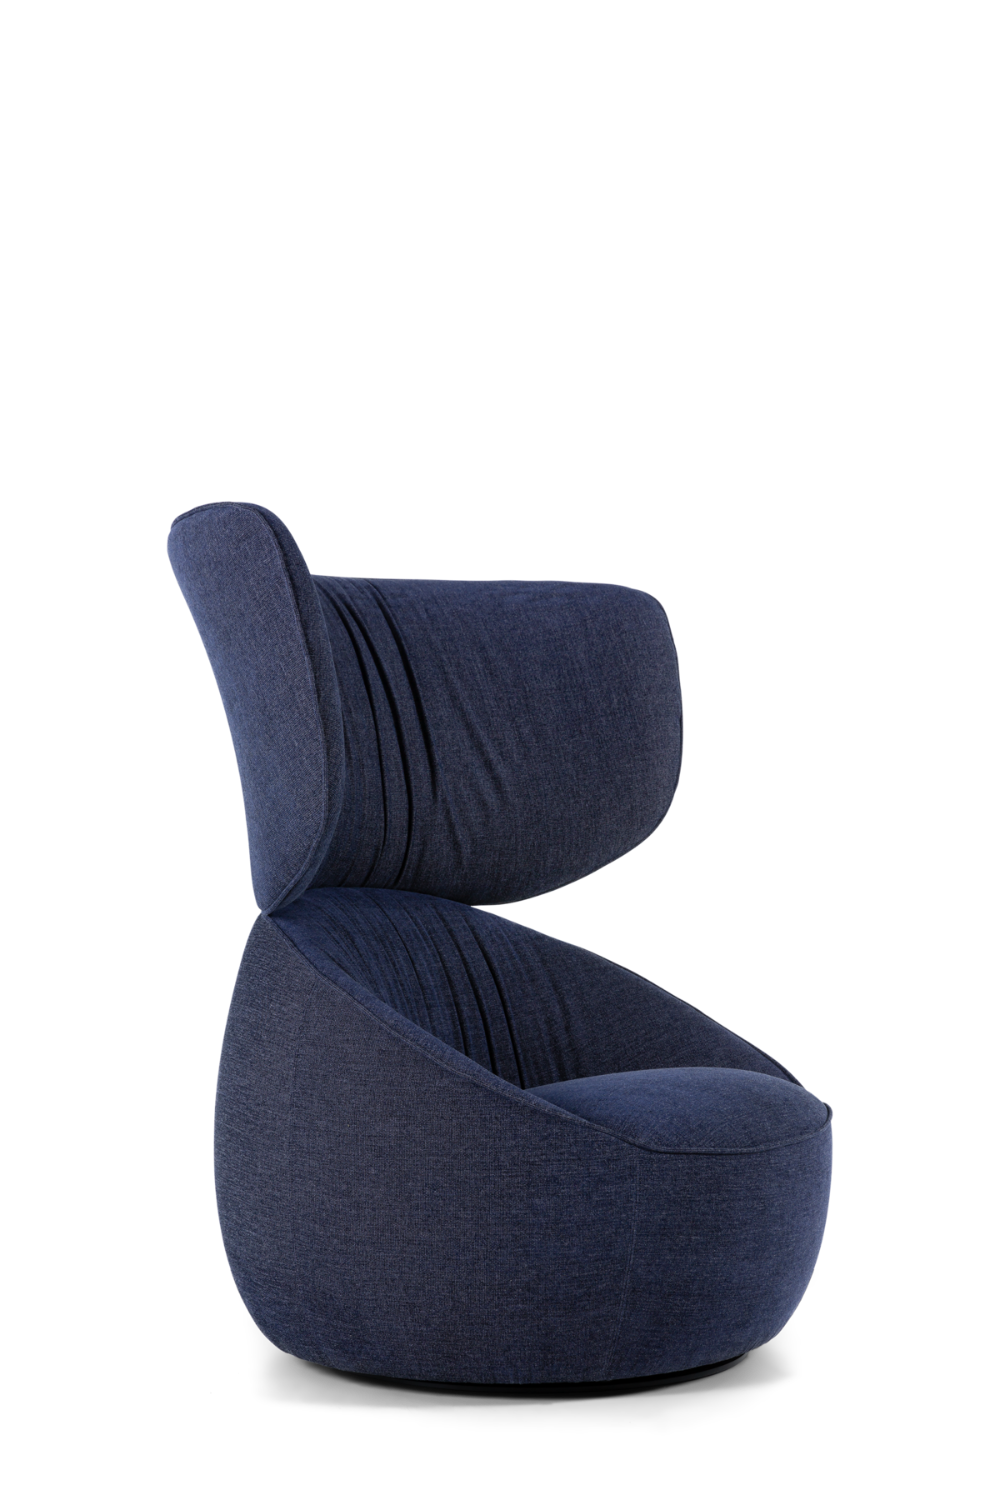 Hana Armchair - Moooi in 2020 | Armchair, Moooi, Create ...